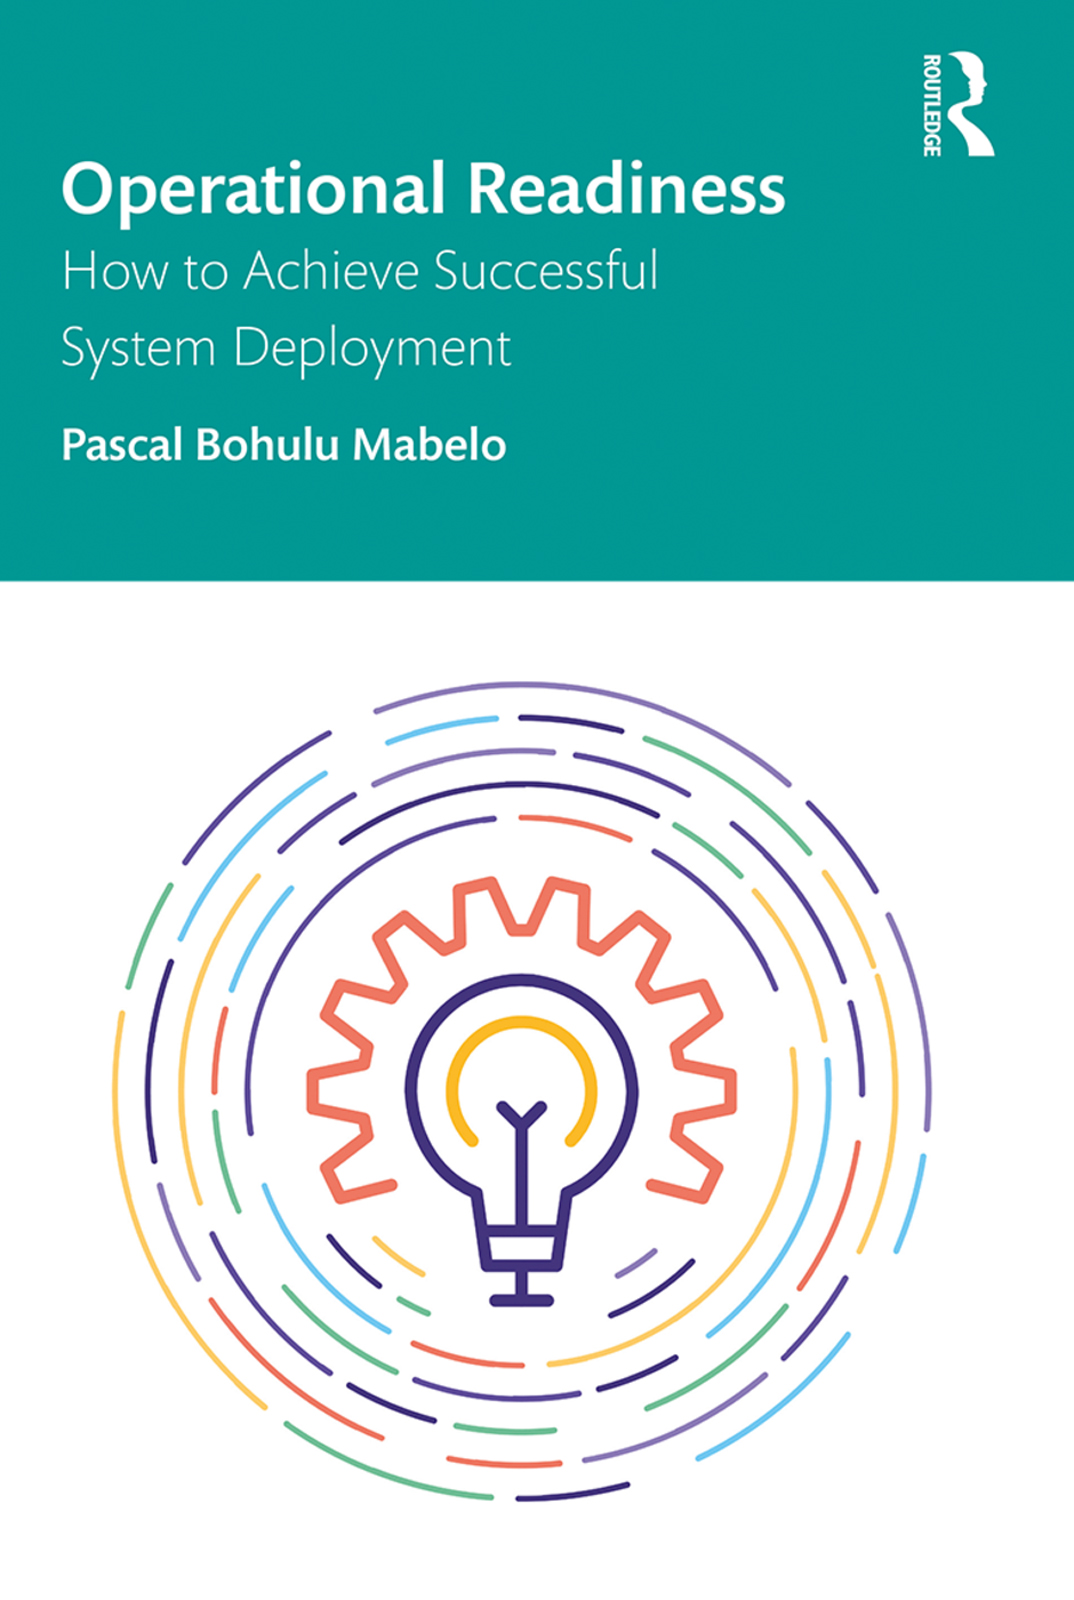 Operational Readiness: How to Achieve Successful System Deployment book cover